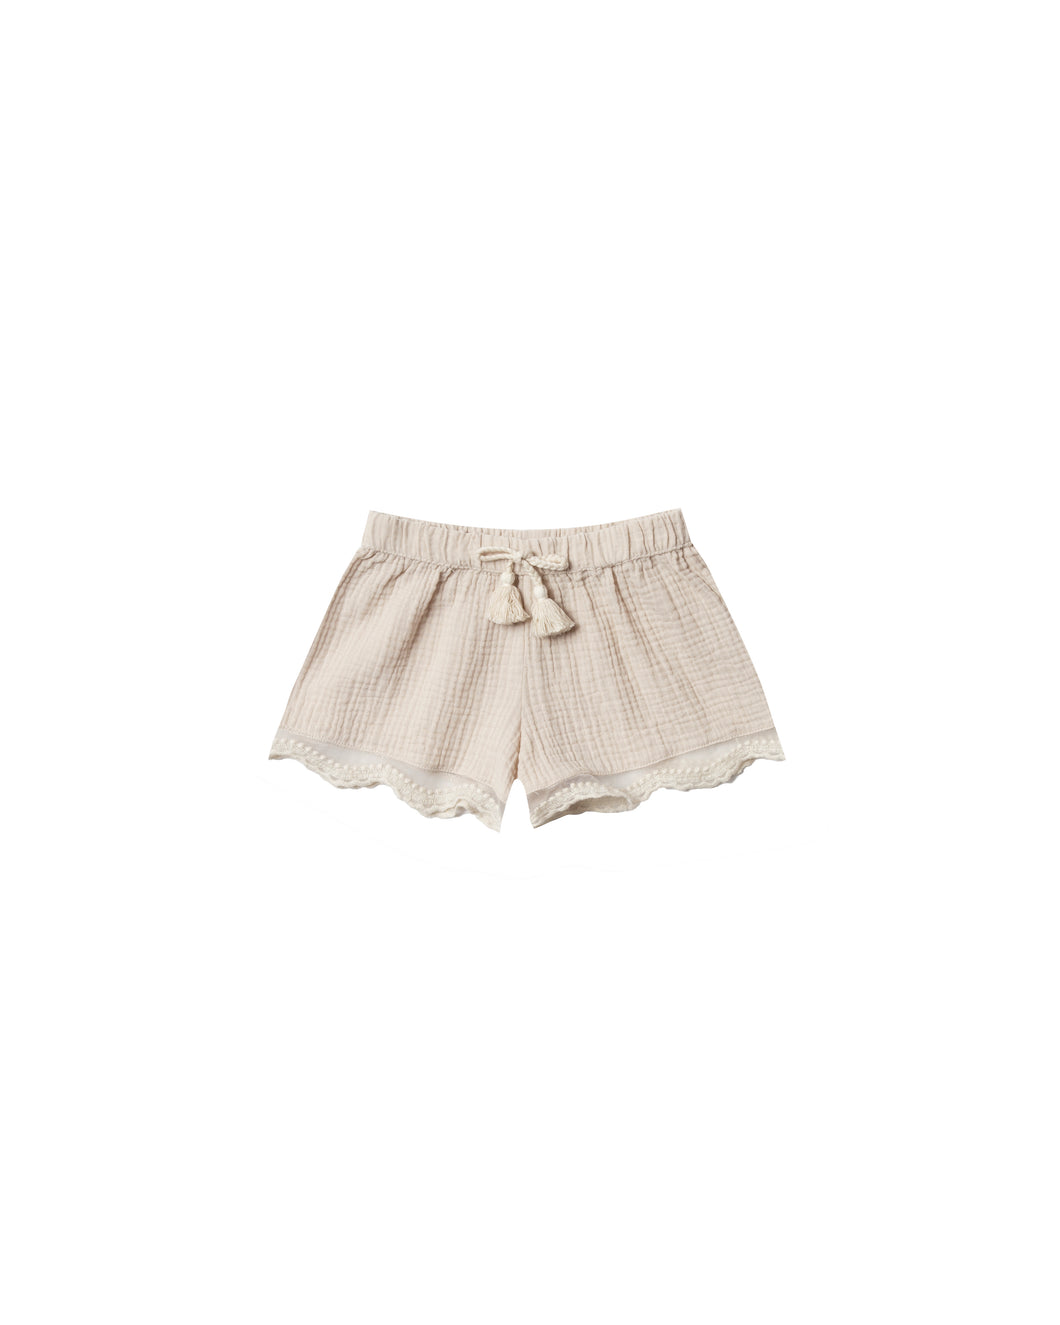 Scallop solana short